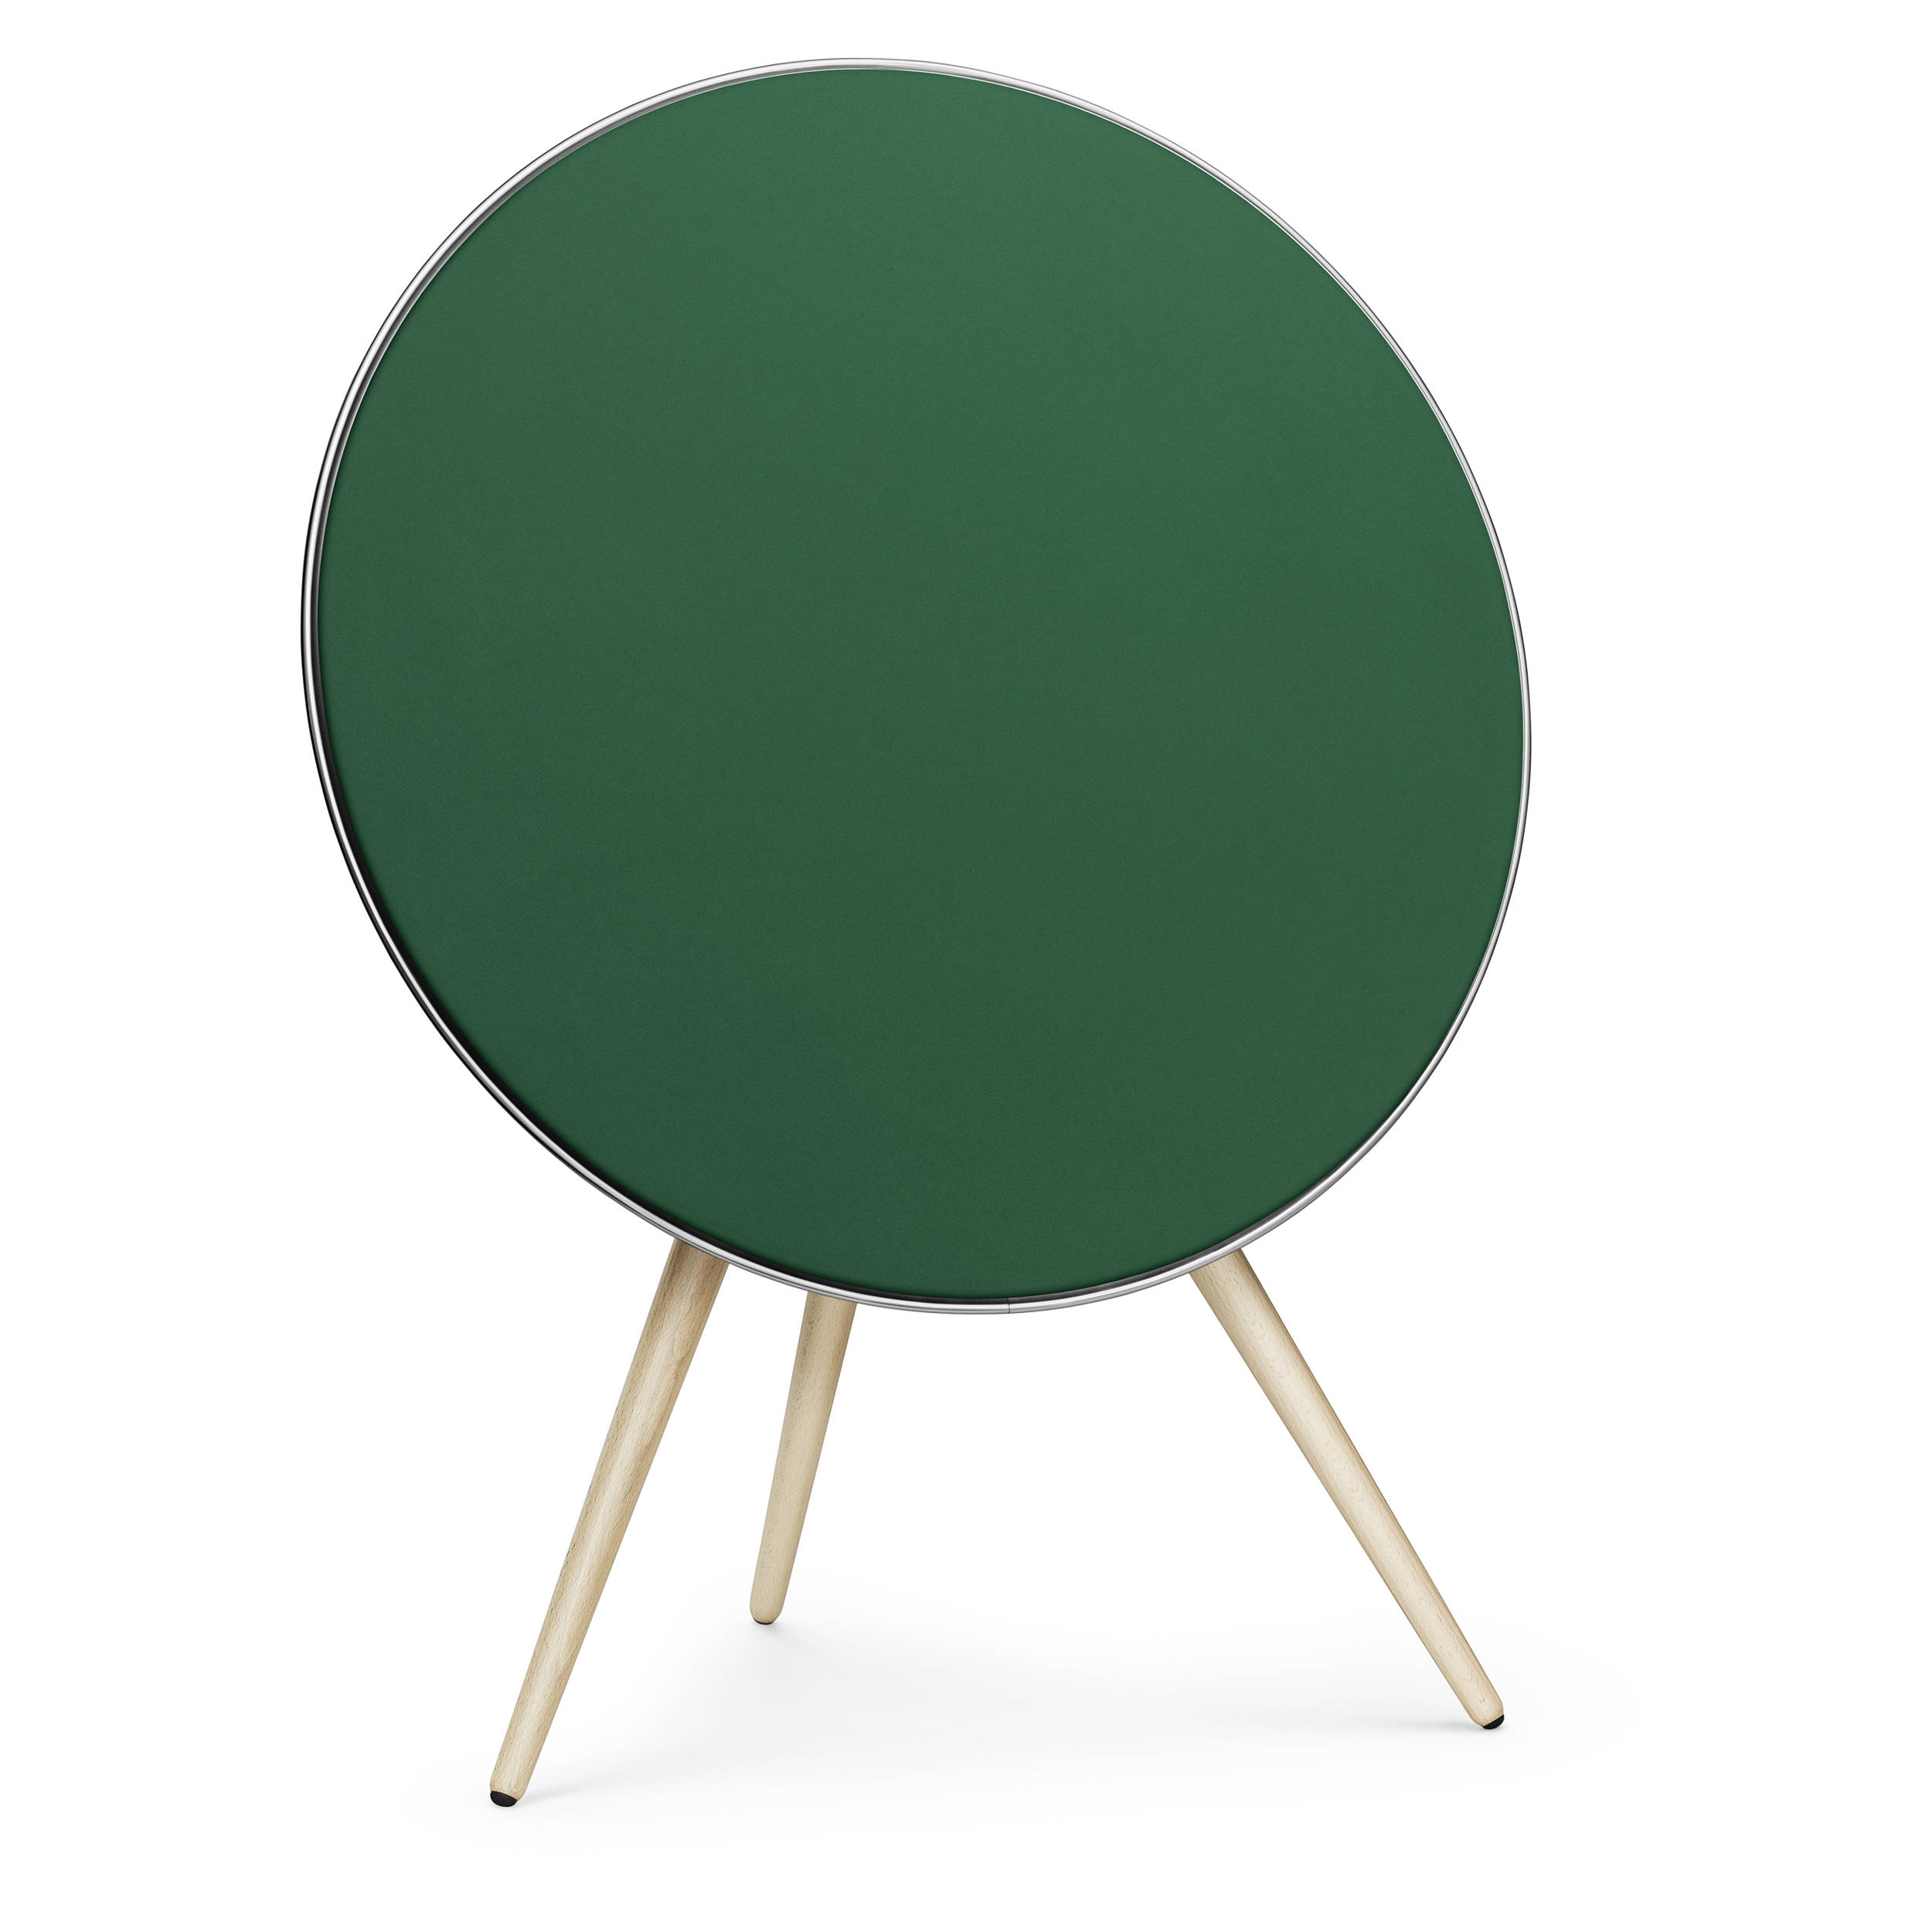 bang olufsen cover for beoplay a9 speaker green 1605523 b h. Black Bedroom Furniture Sets. Home Design Ideas